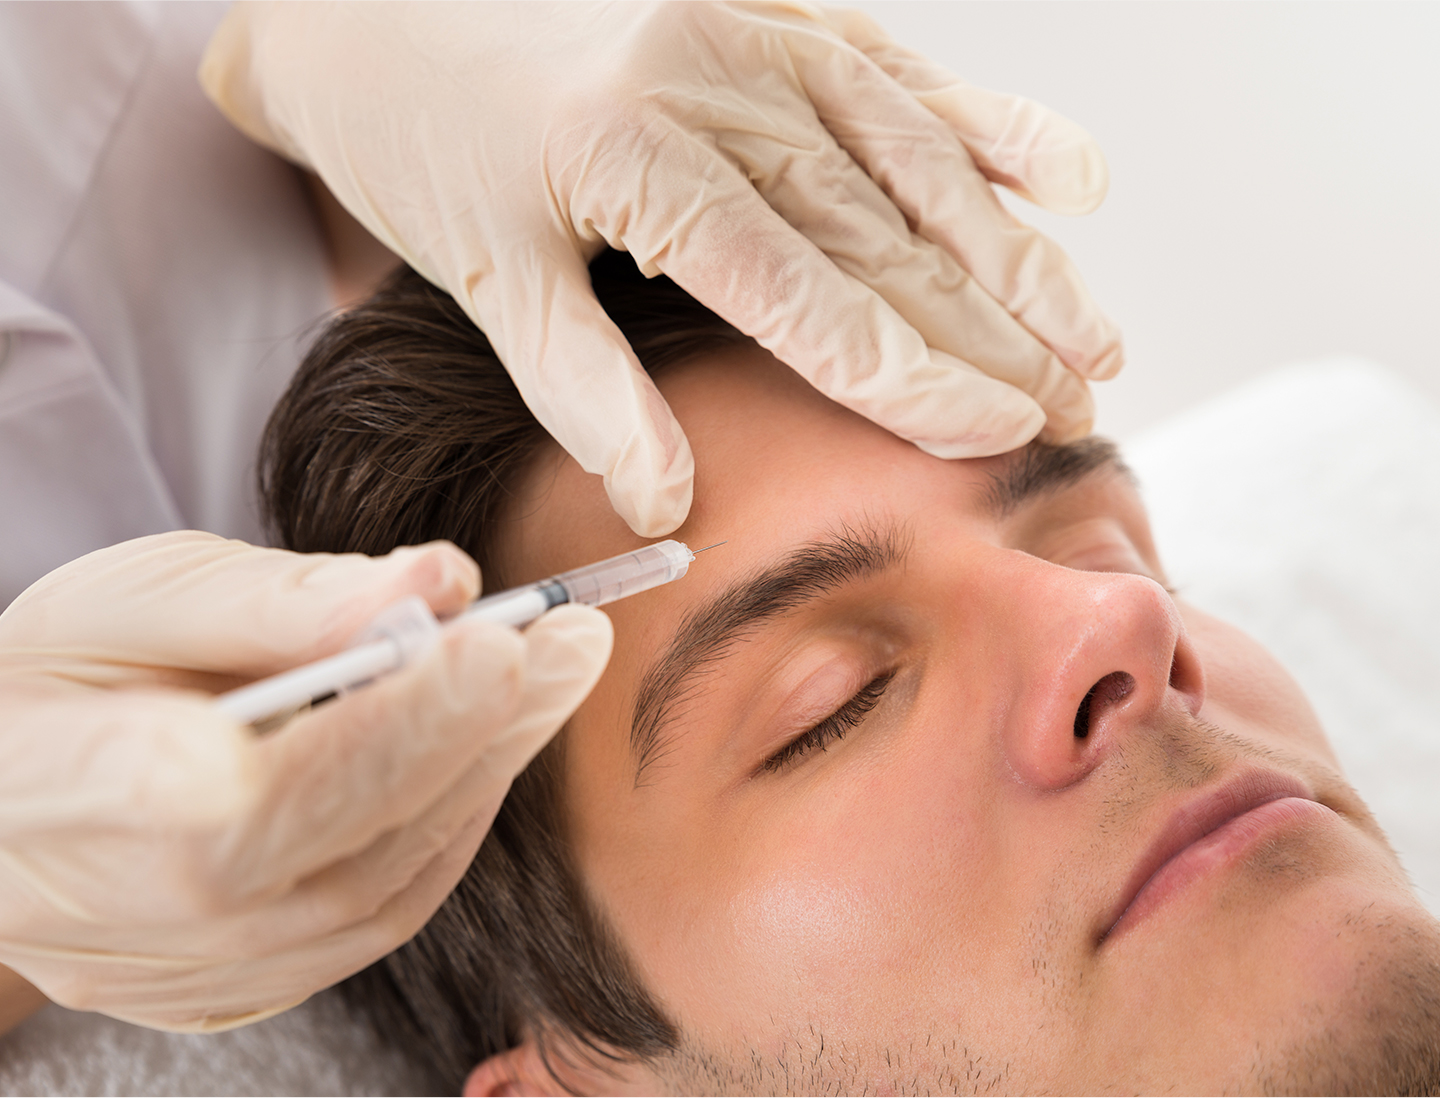 Man having Botox injection to forehead.